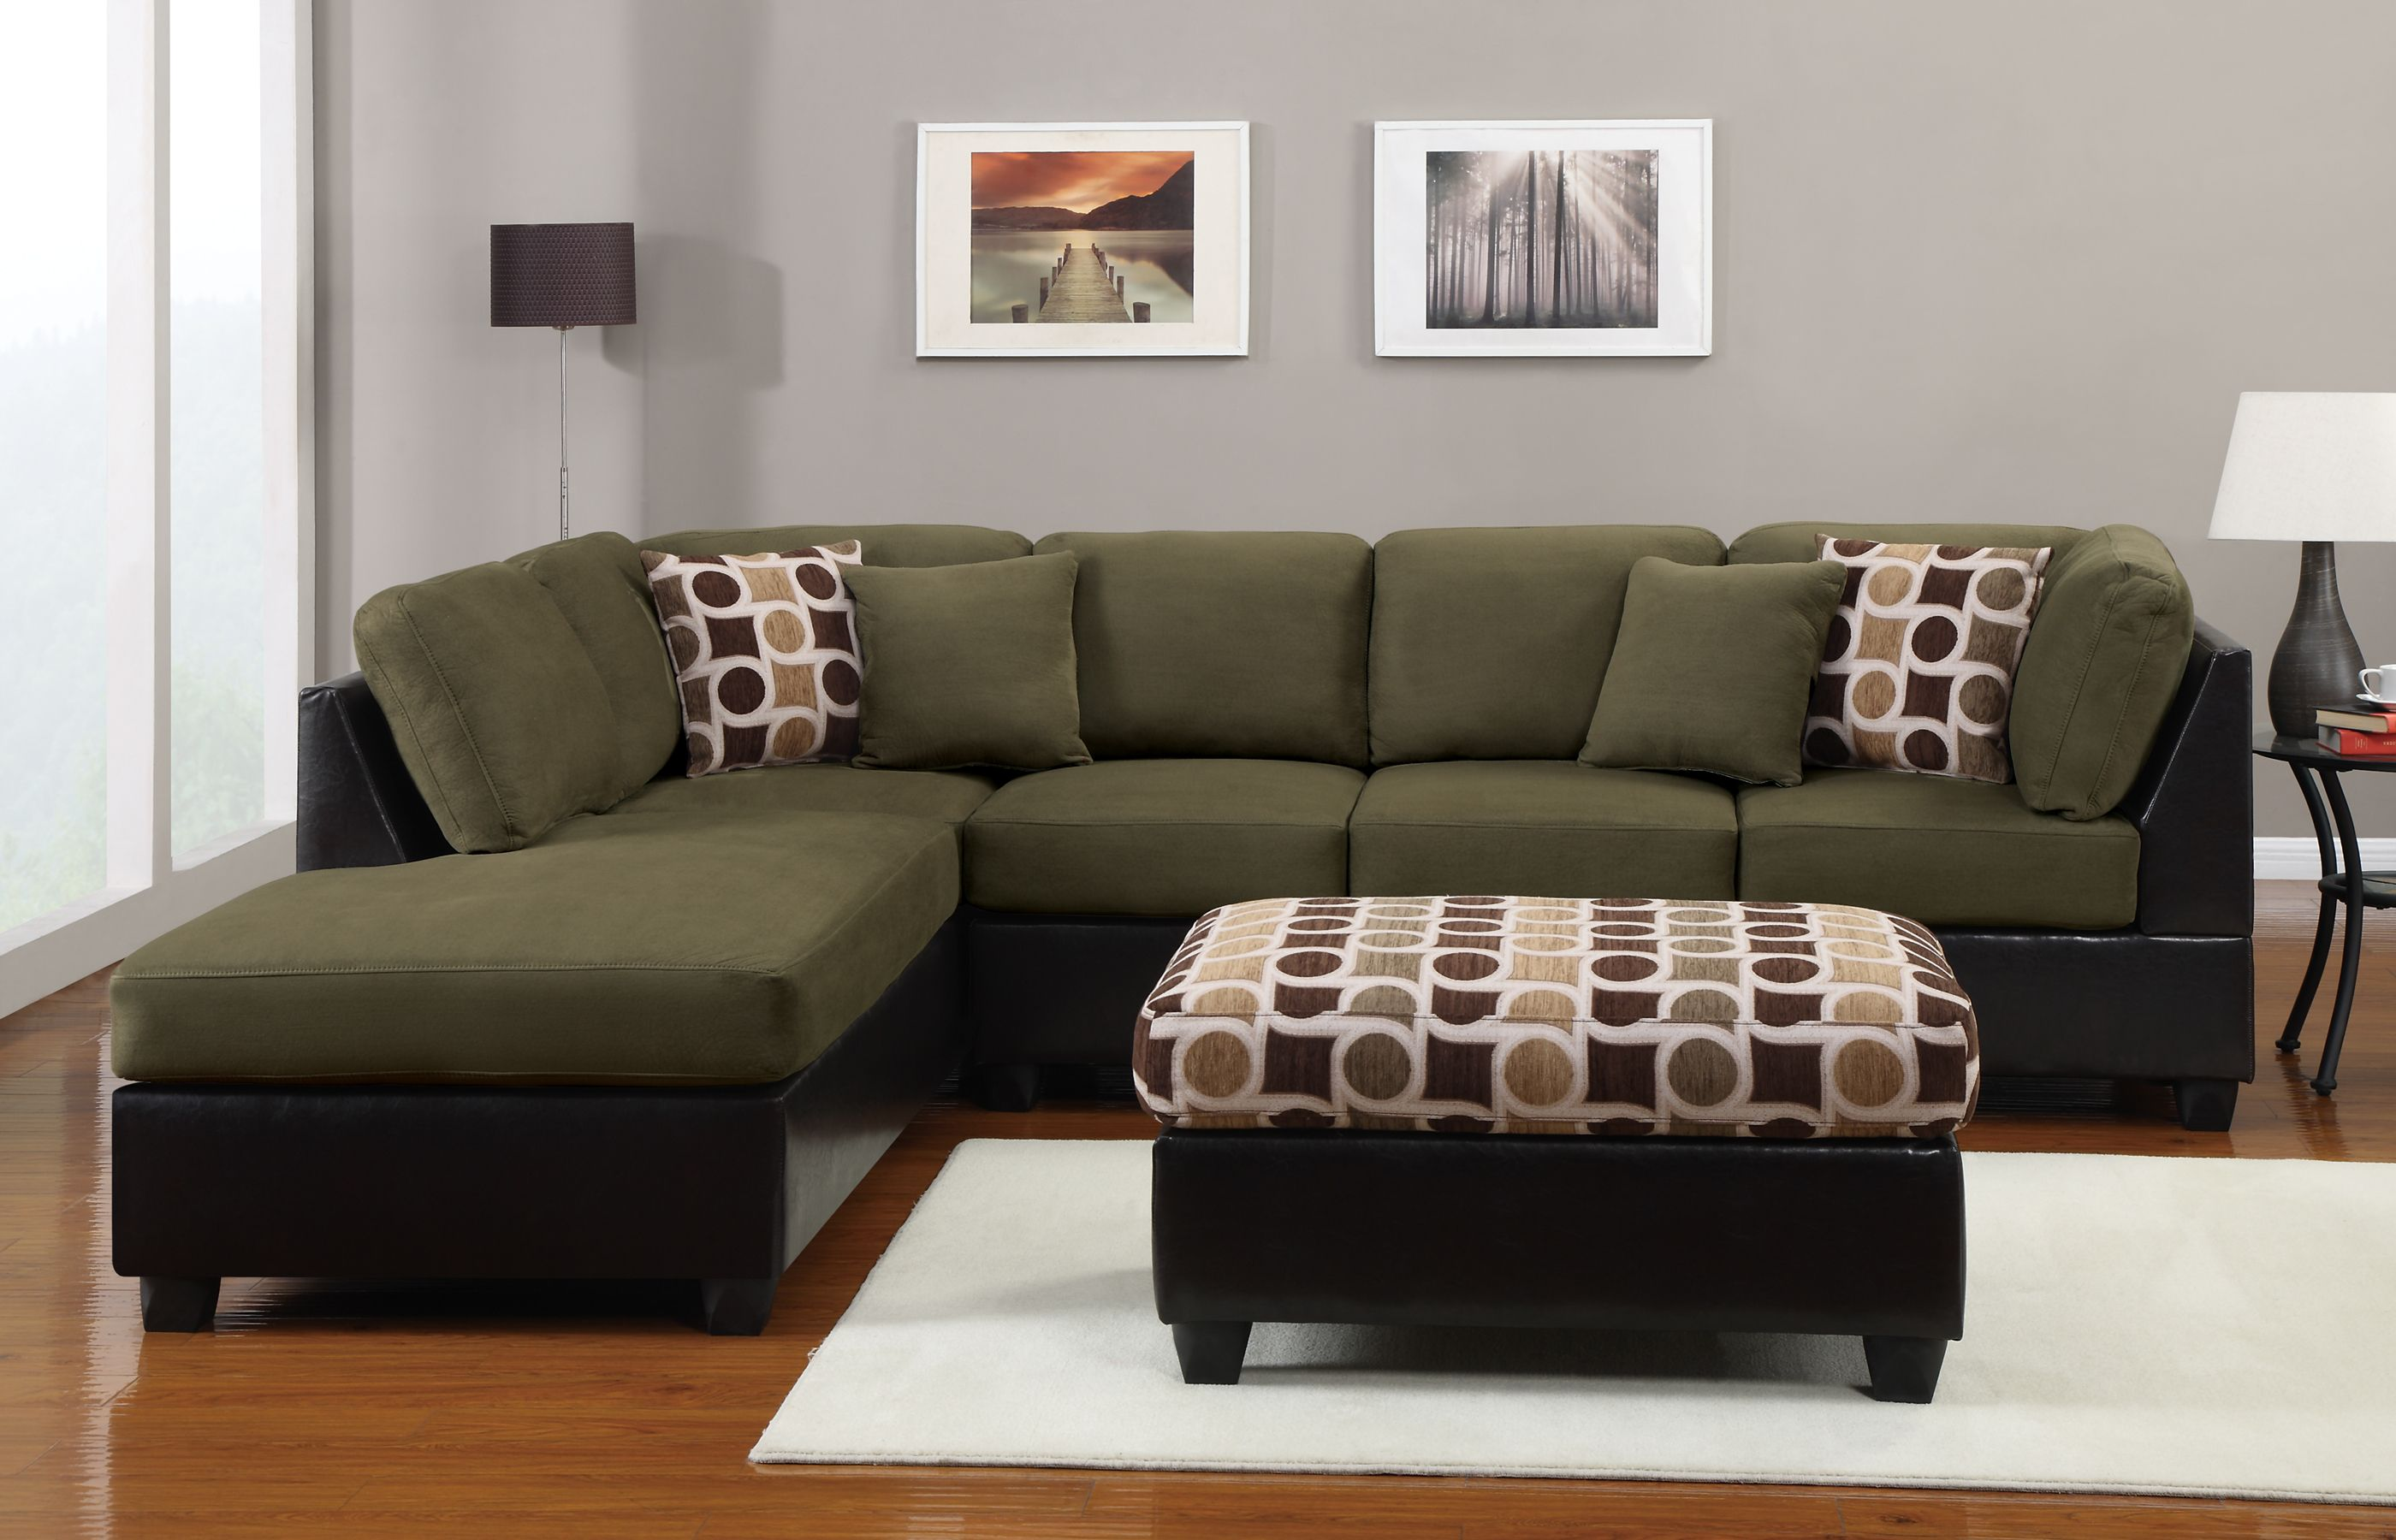 Chaise Sectional Couch E2 80 94 Panoramalife graphy L Shaped